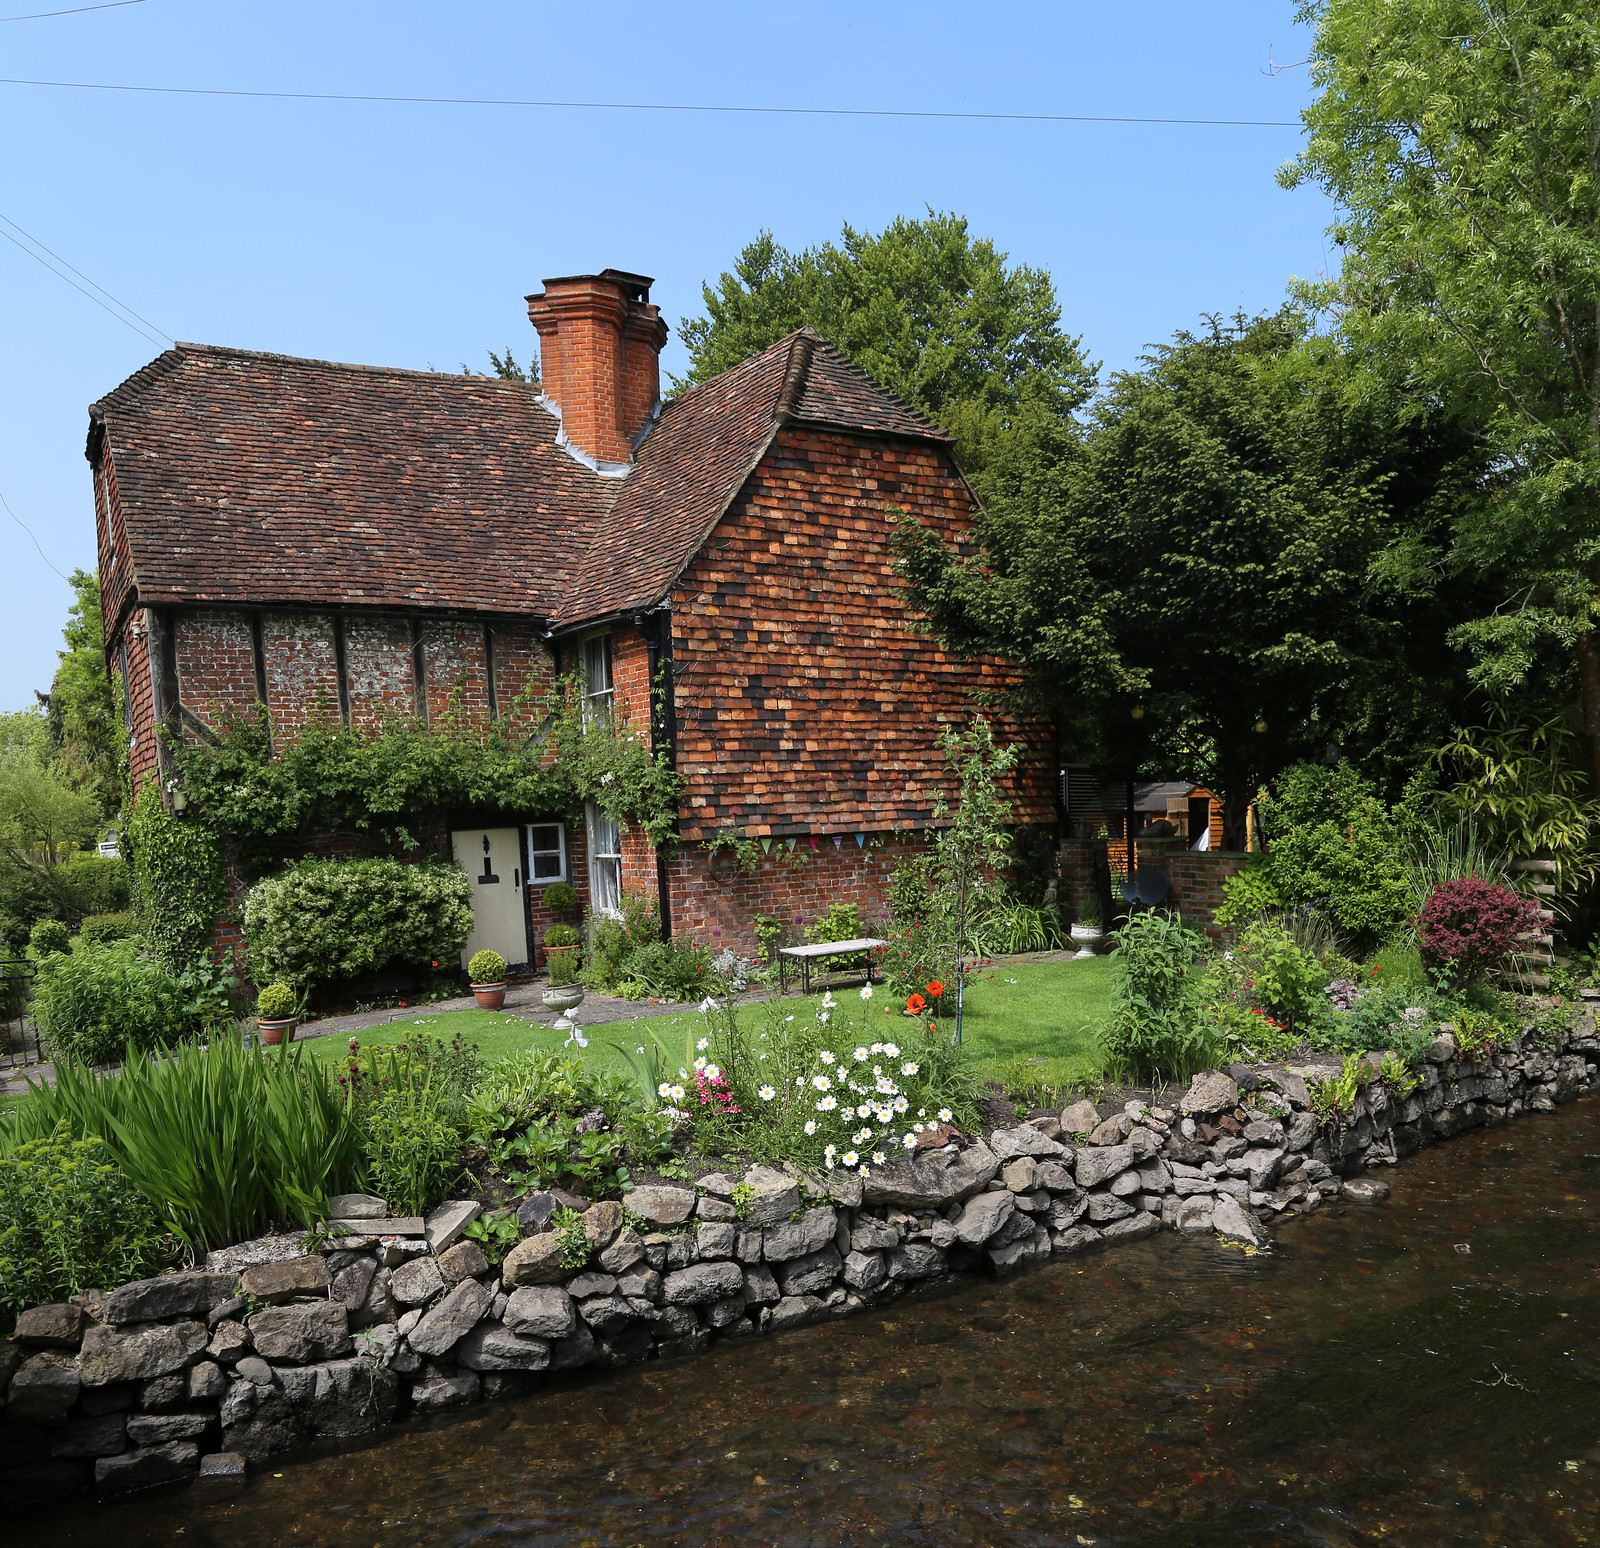 Garden by the river - Otford to Eynsford Walk